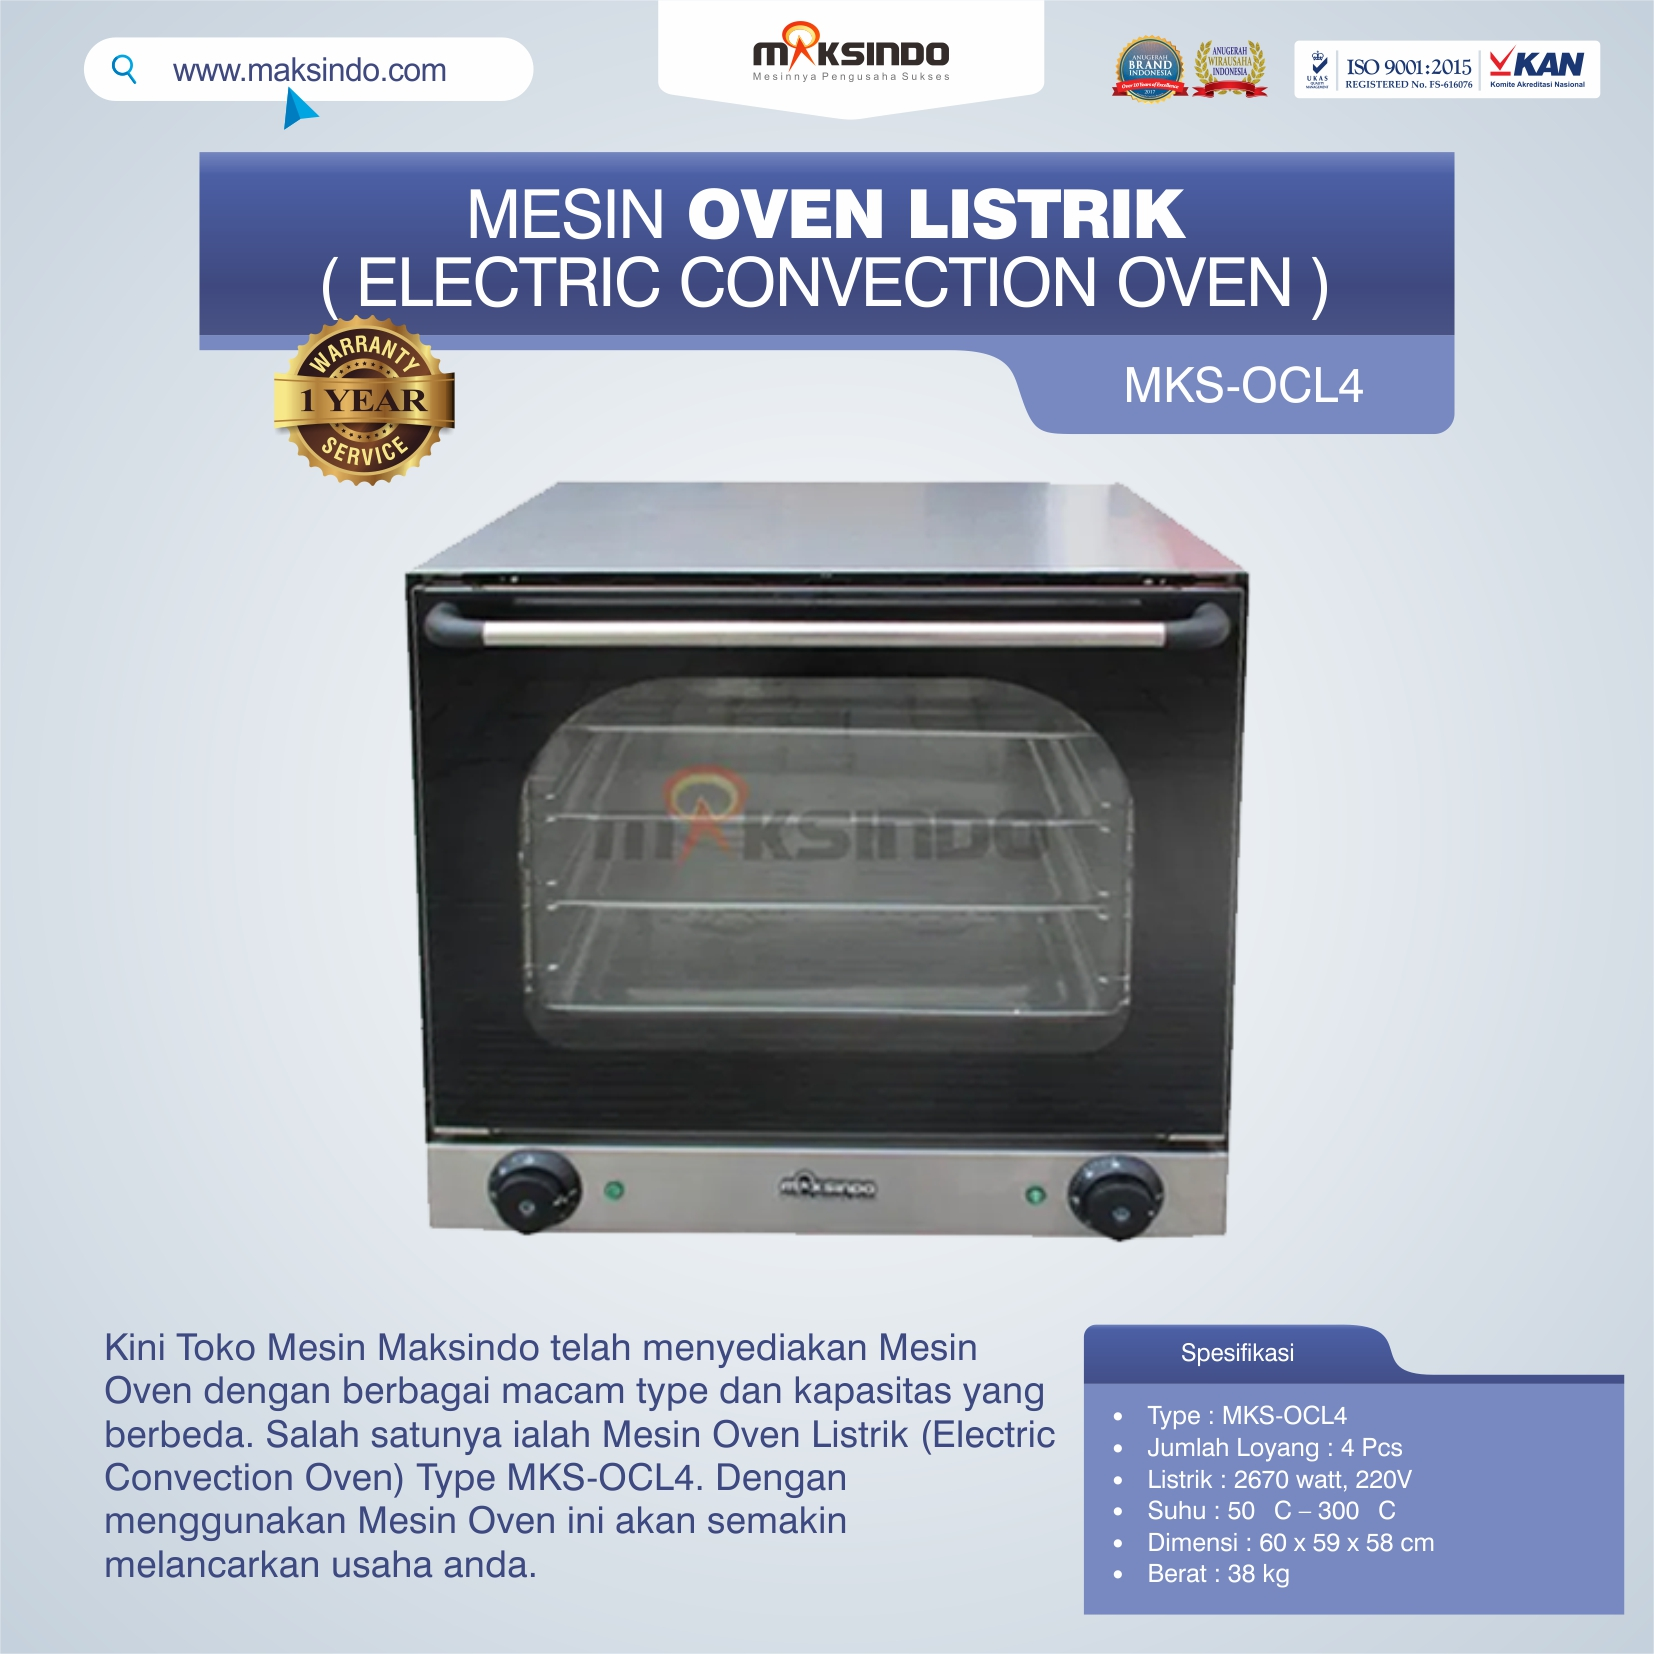 Mesin Oven Listrik (Electric Convection Oven) MKS-OCL4